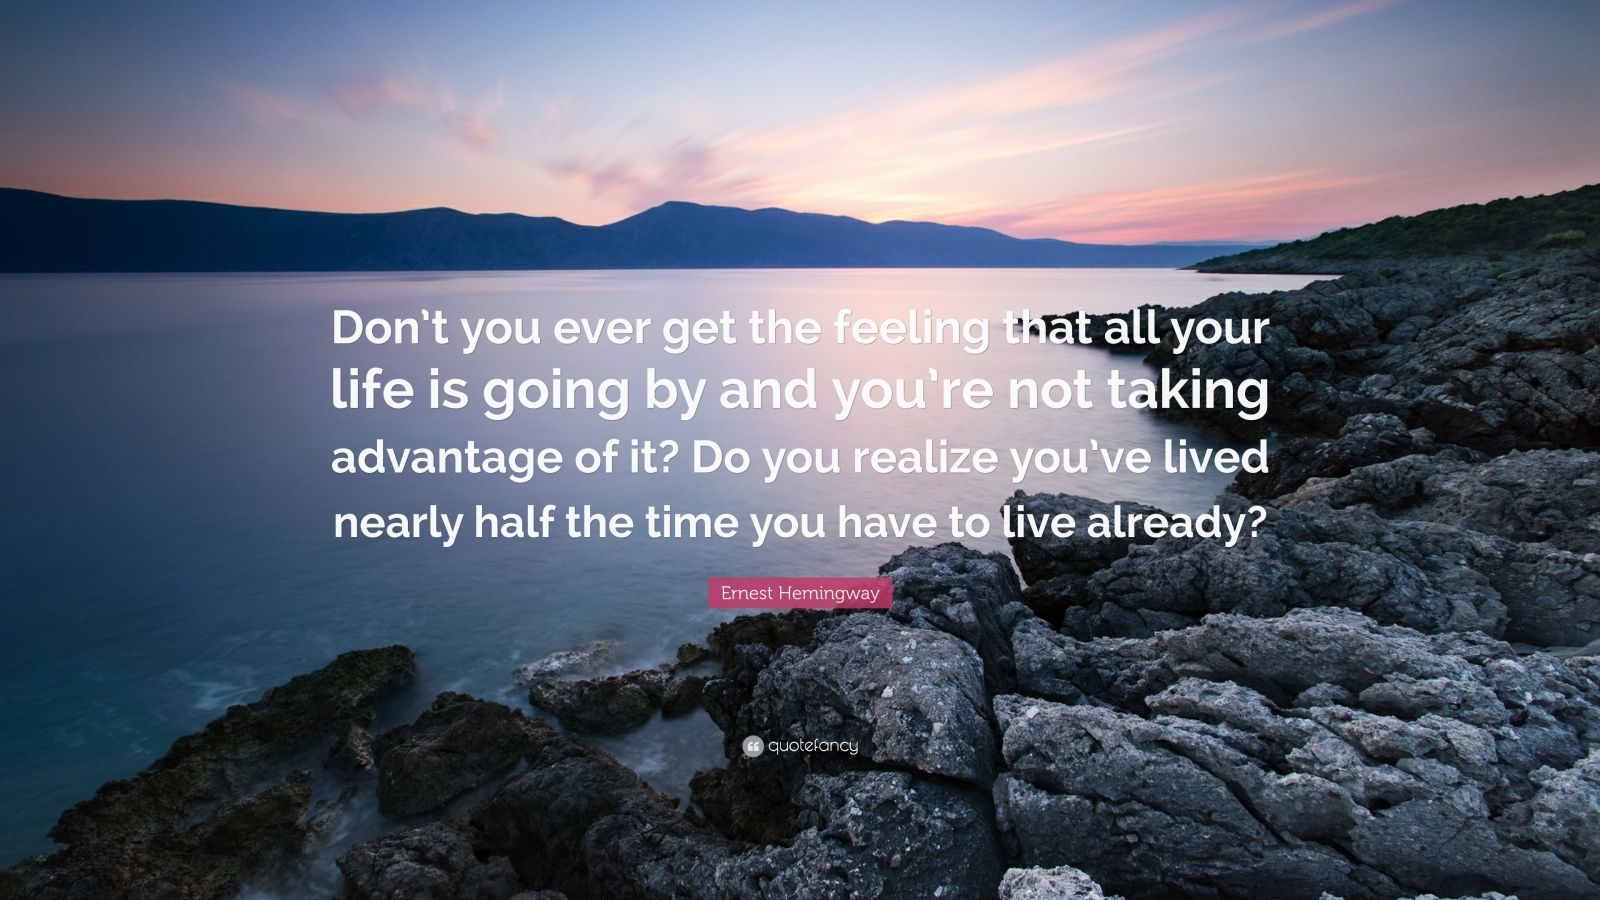 """Ernest Hemingway Quote: """"Don't you ever get the feeling that all your life is going by and you're not taking advantage of it? Do you realize you've lived nearly half the time you have to live already?"""""""